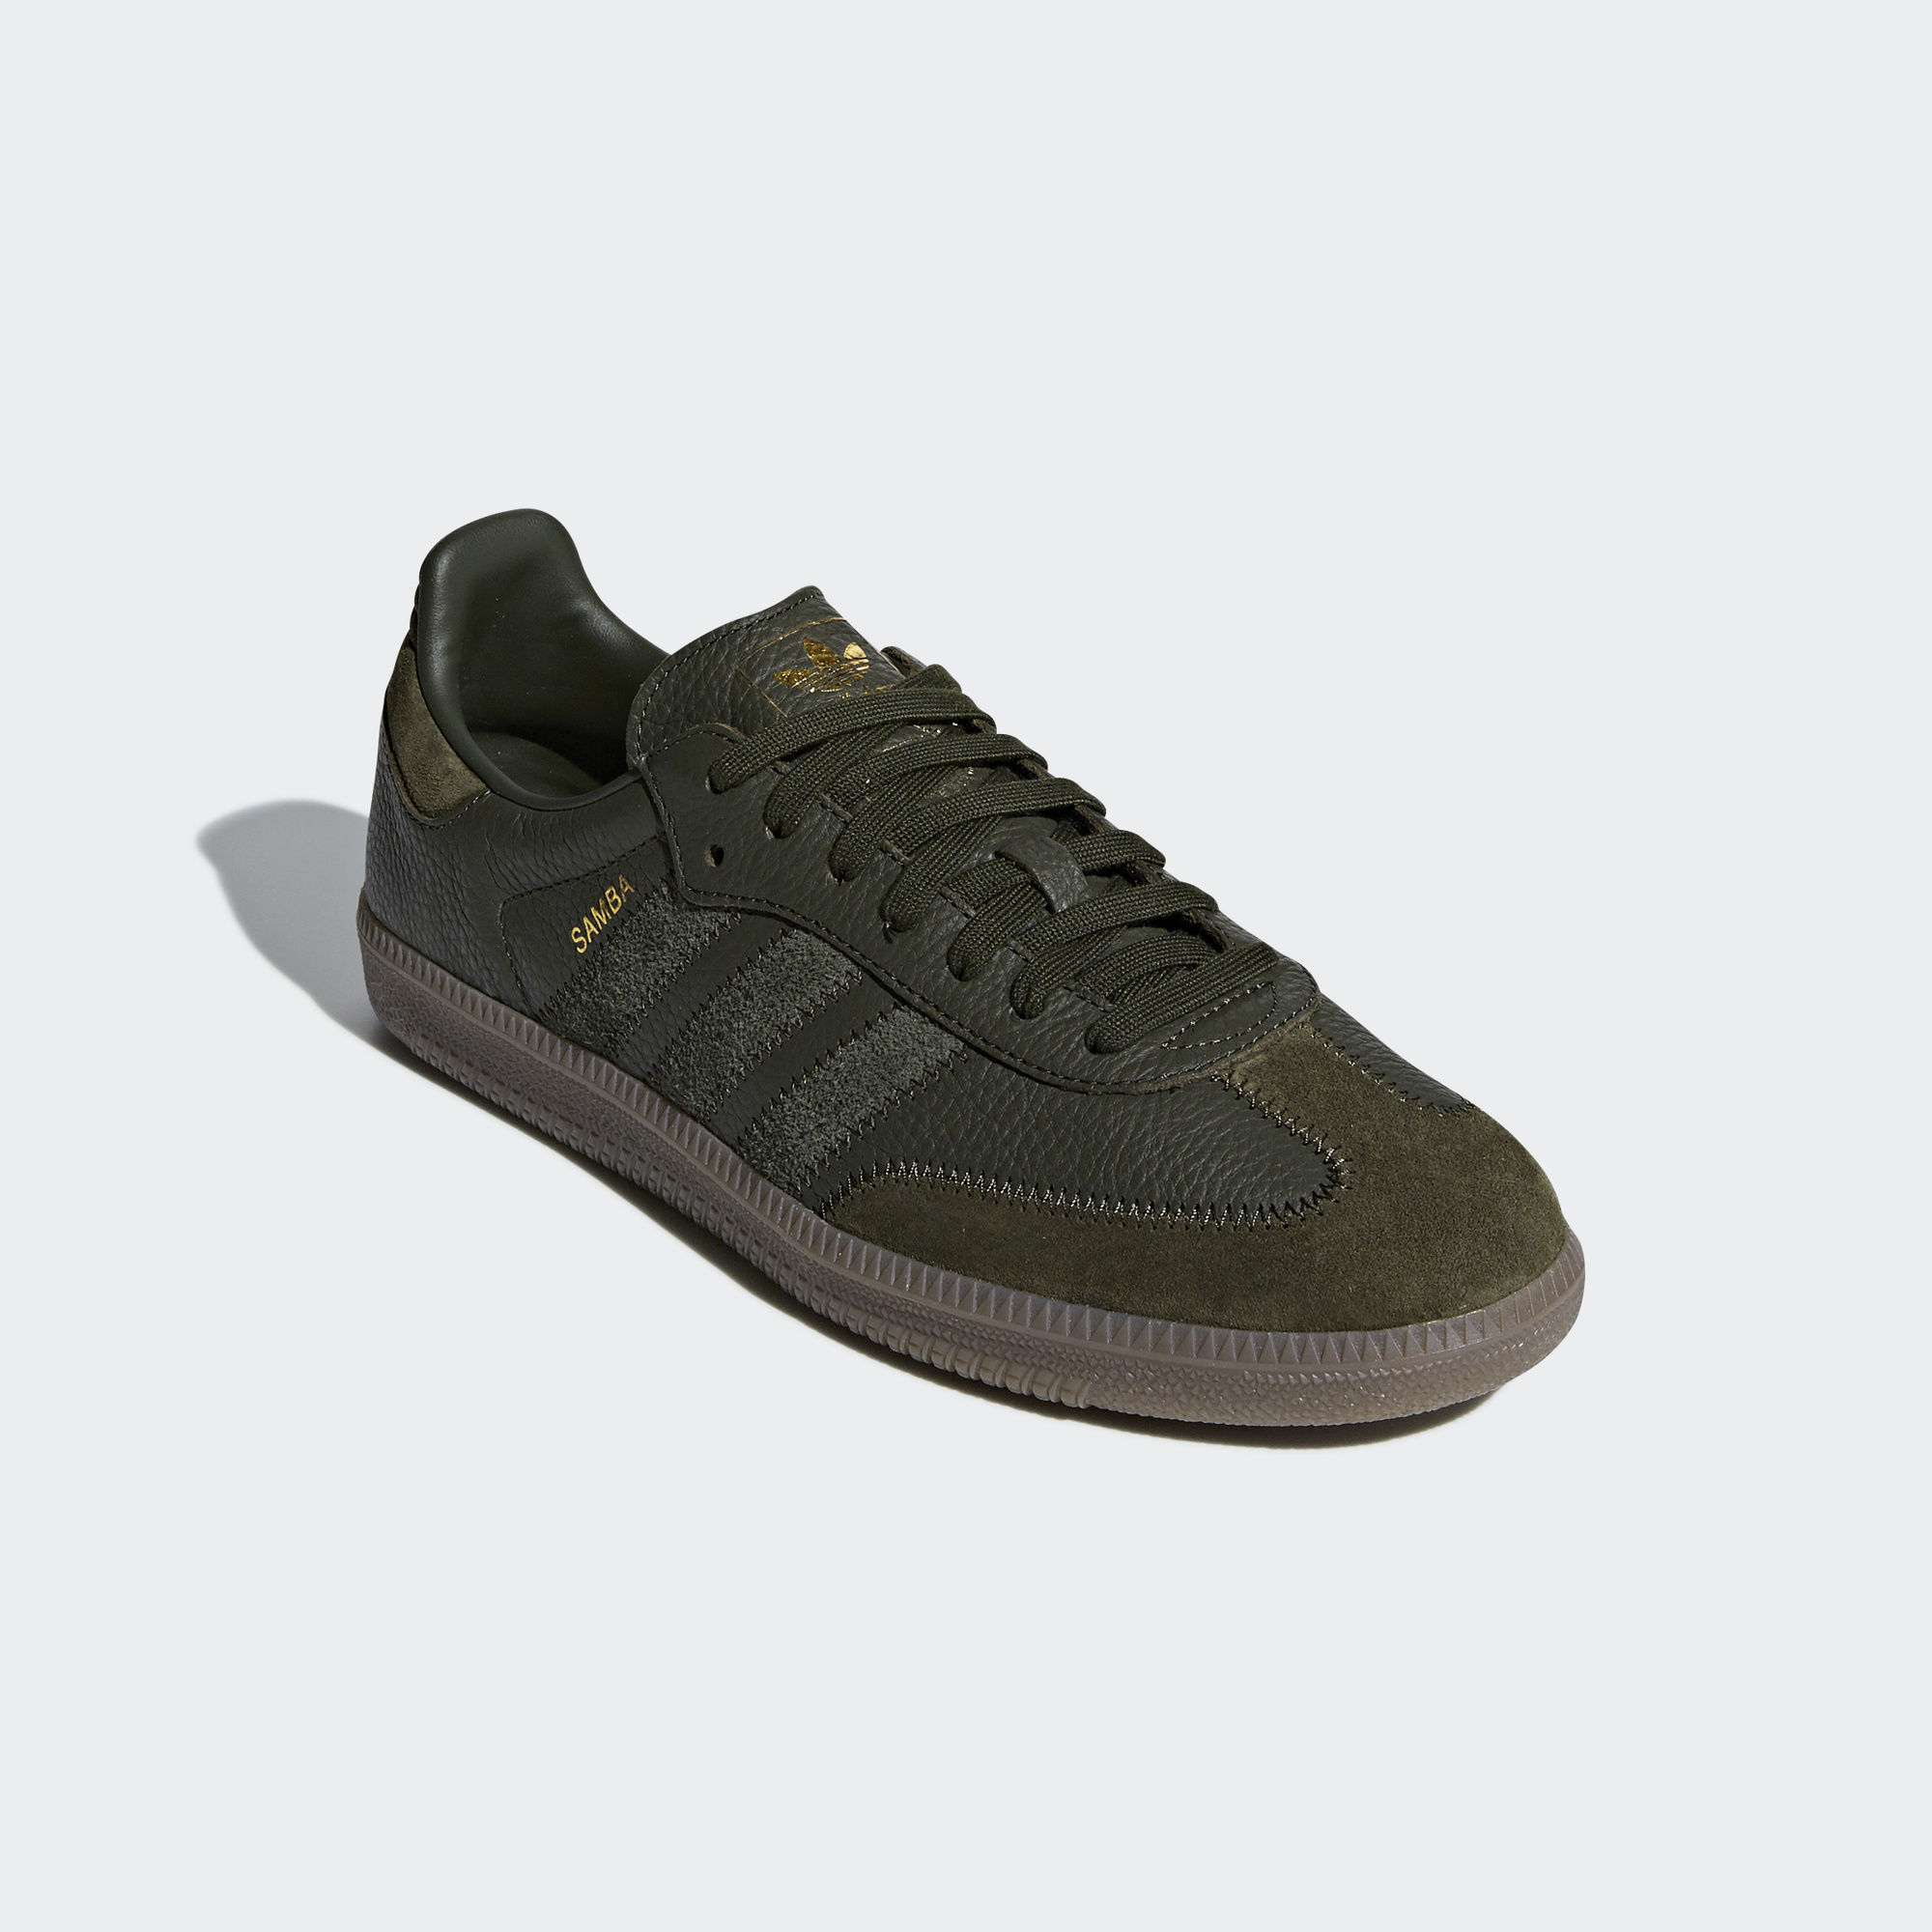 3d80e90d8ca30b Кроссовки Samba OG FT BD7526 adidas Originals - Украина | ONETEAM.COM.UA